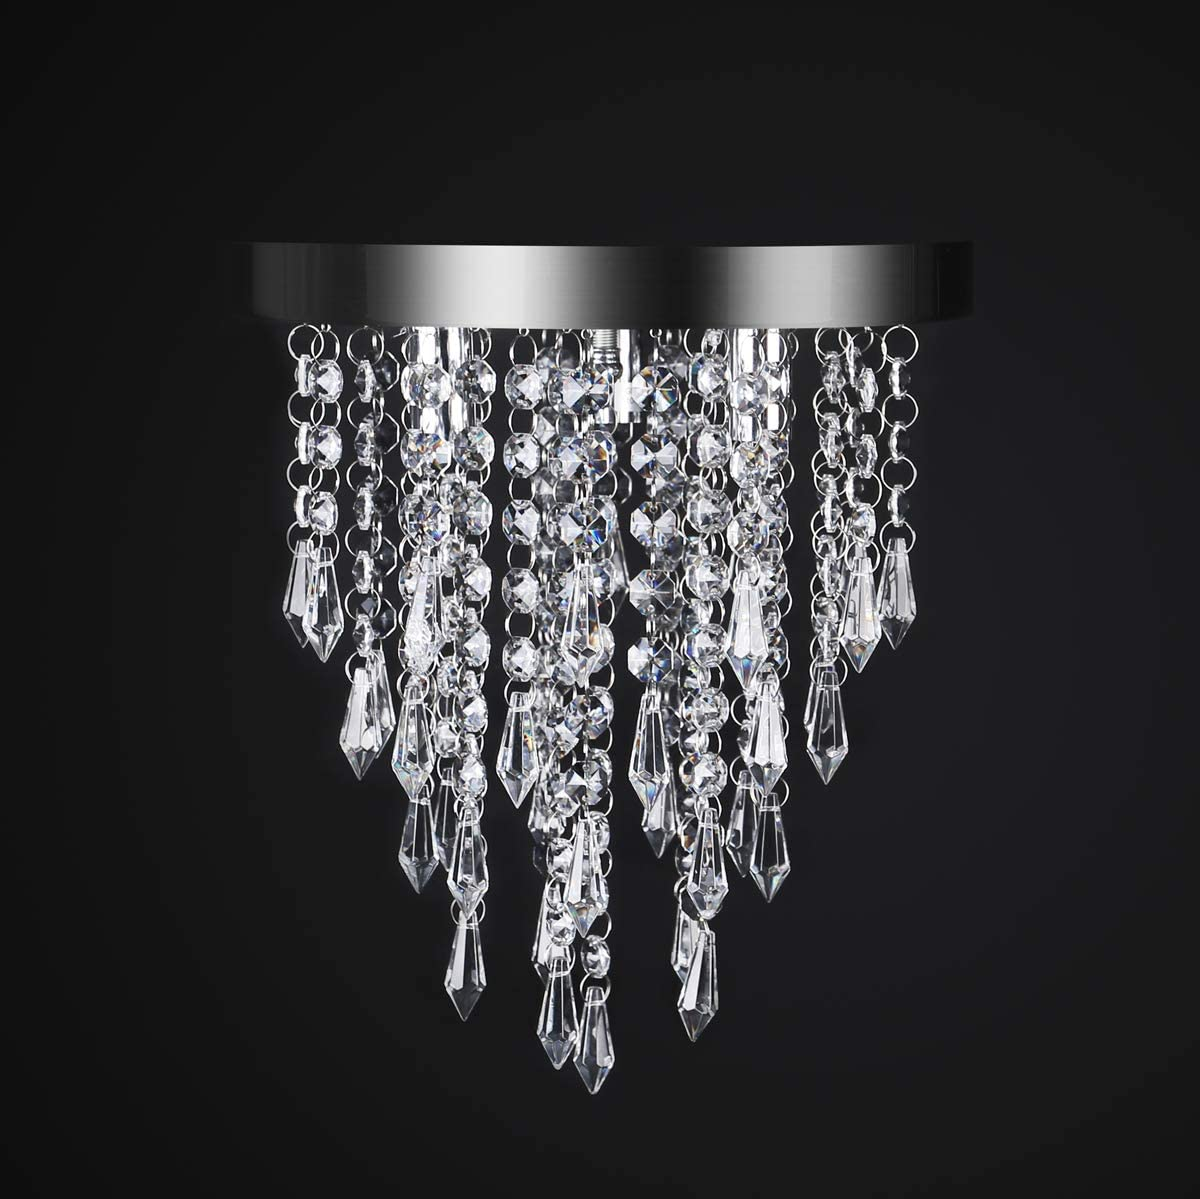 chandeliers amazon com lighting \u0026 ceiling fans ceiling lightscrystal chandelier,kakanuo modern crystal ceiling light,3 lights,flush mount crystal light